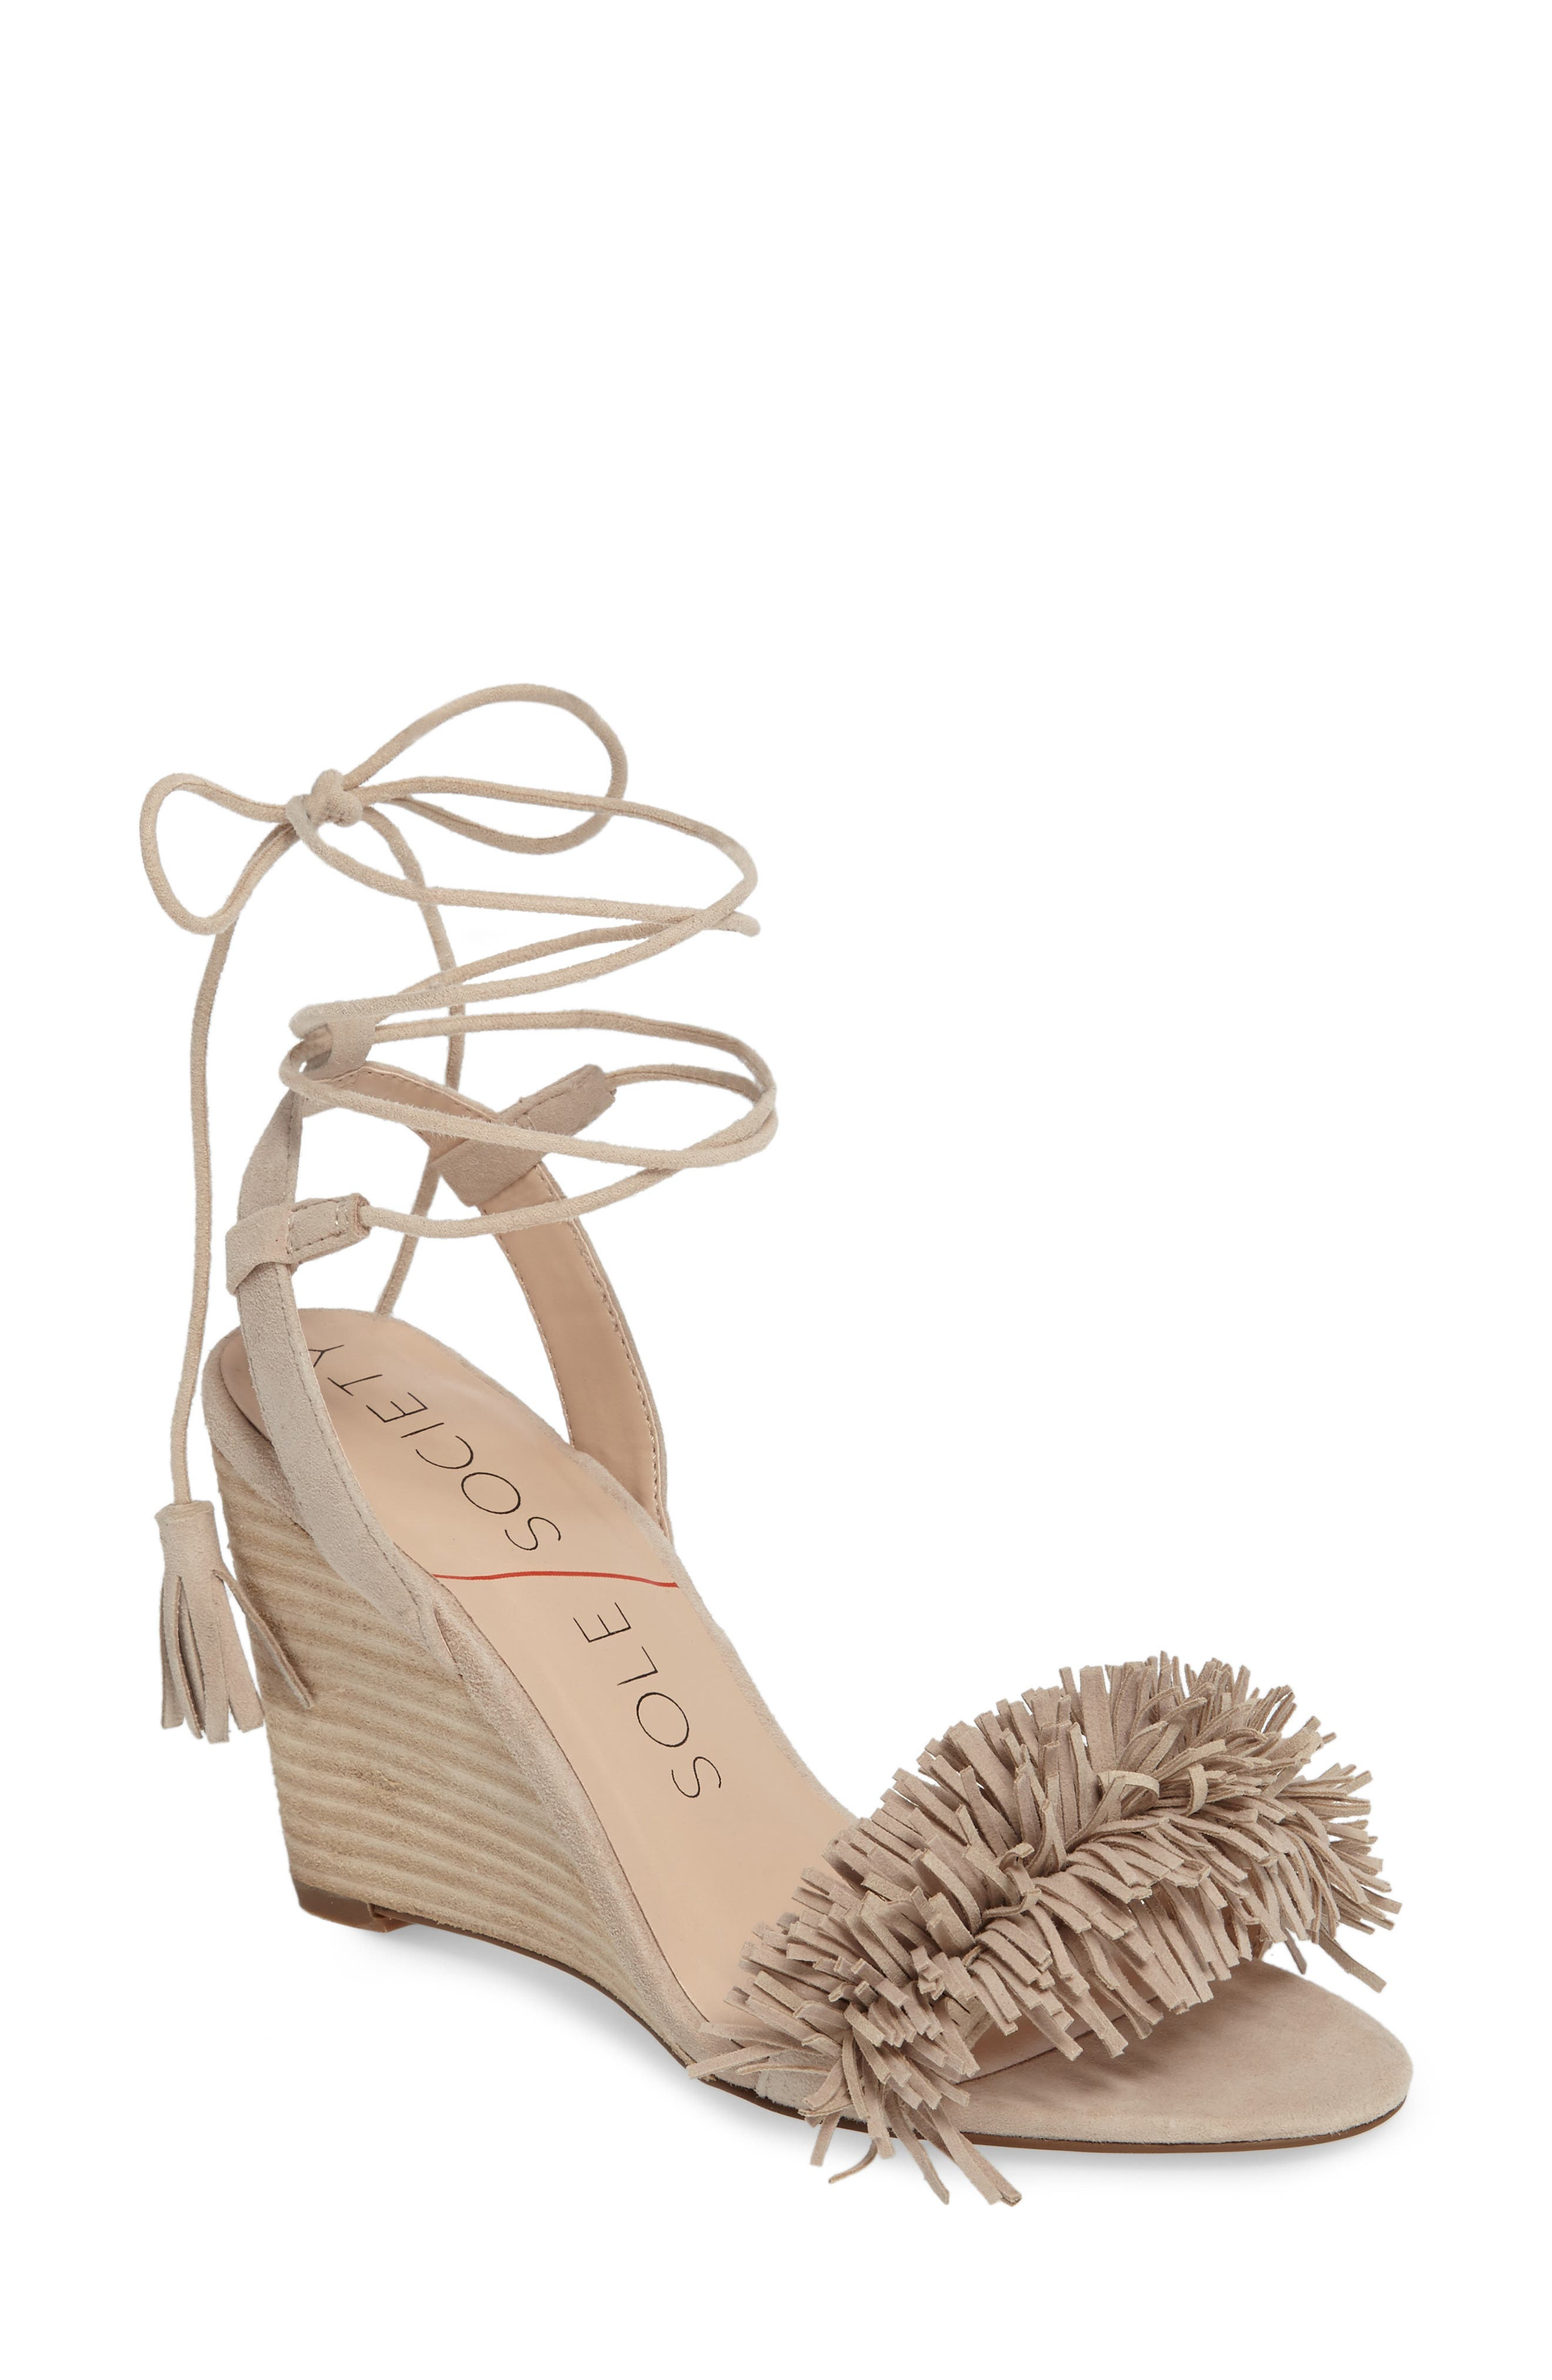 Rosea Ankle Wrap Sandal,                             Main thumbnail 1, color,                             French Taupe Suede